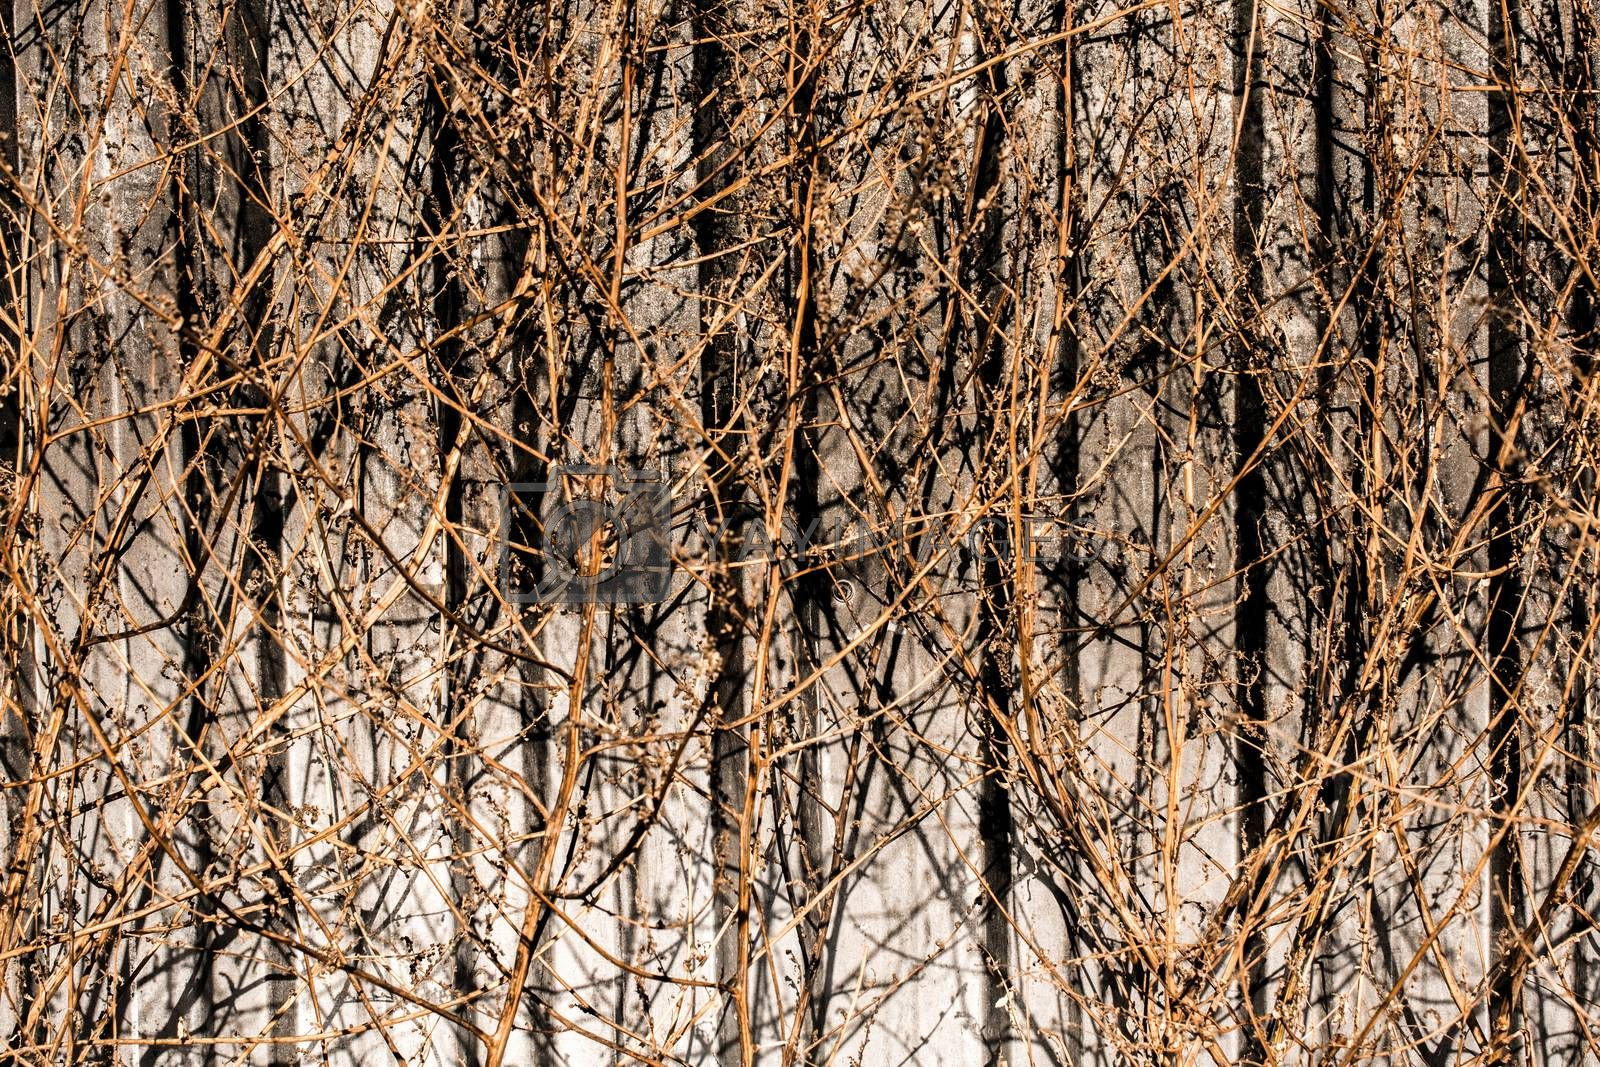 Dried trees on a gray background in autumn in view